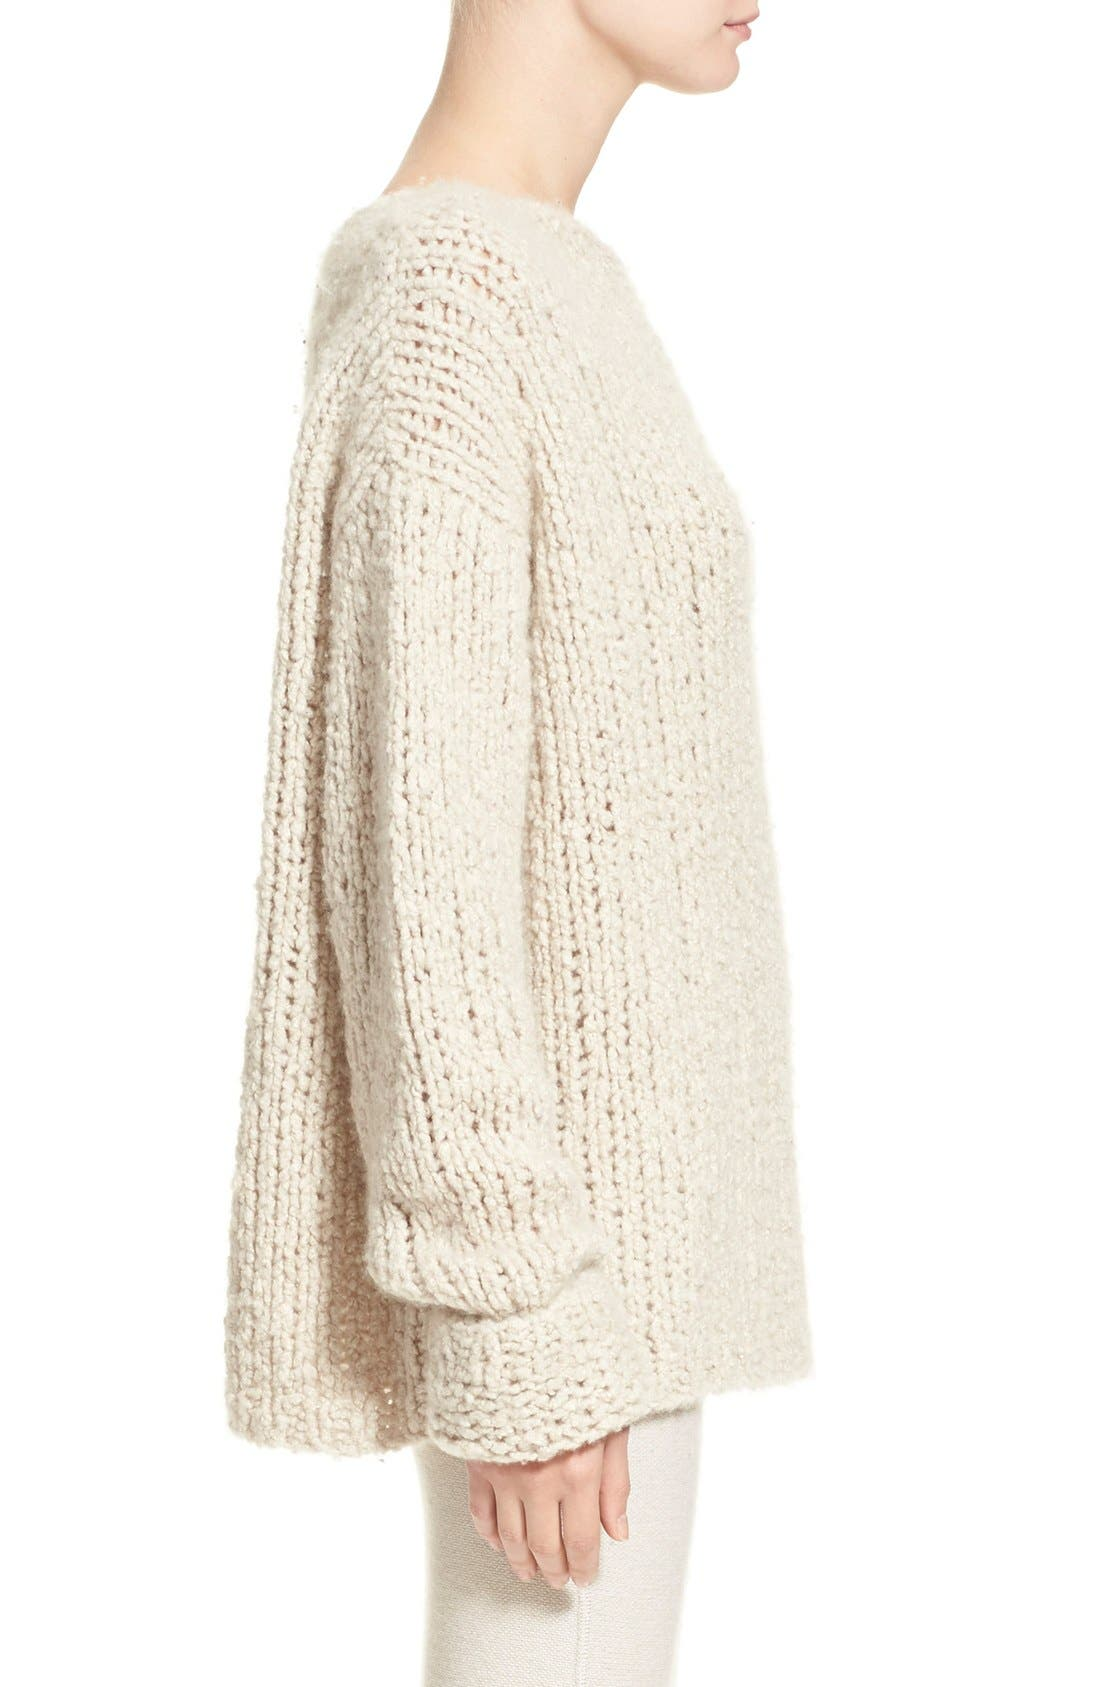 Donna KaranCollection Hand Knit Cashmere Sweater,                             Alternate thumbnail 2, color,                             282